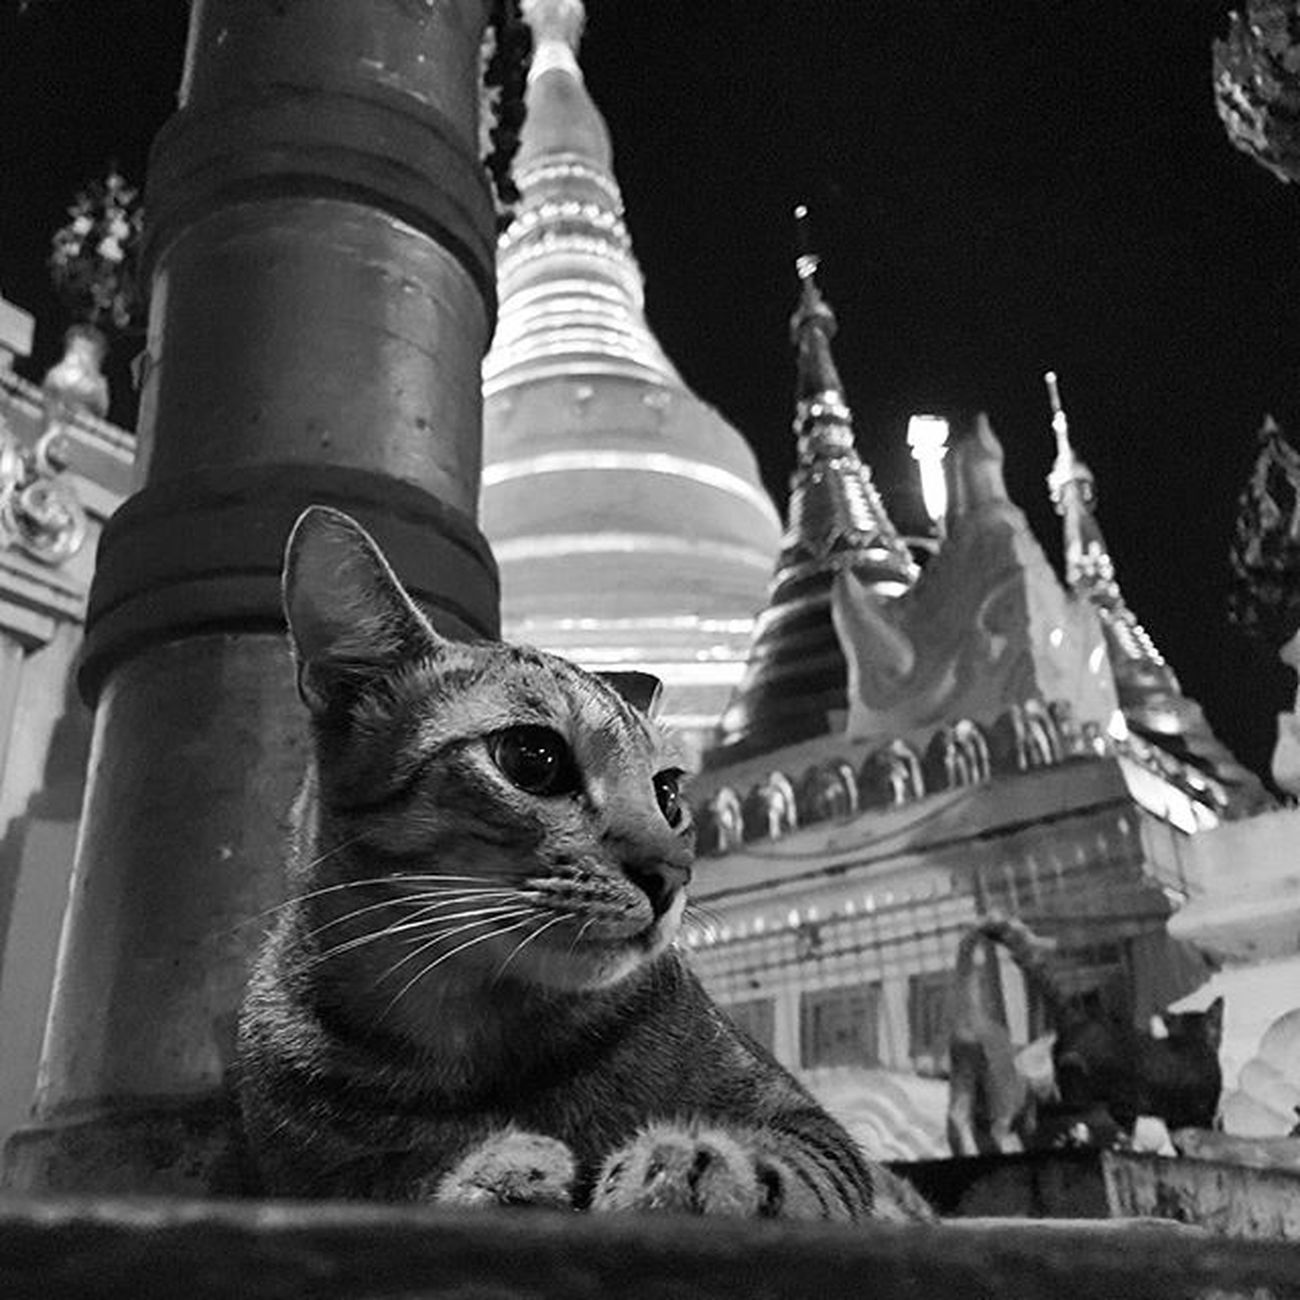 The cat & the pagoda (Burmese New Year) Cat Shwedagon Pagoda Shwedagonpagoda Stupa Kitten Straycat Yangon Rangoon Myanmar Burma Igersmyanmar Instagood Instagram AOV Artofvisuals Choose2create Travelgood Mobilephotography Mobilephoto Blackandwhite Blacknwhite Vacationinstyle Bnw Alphahype